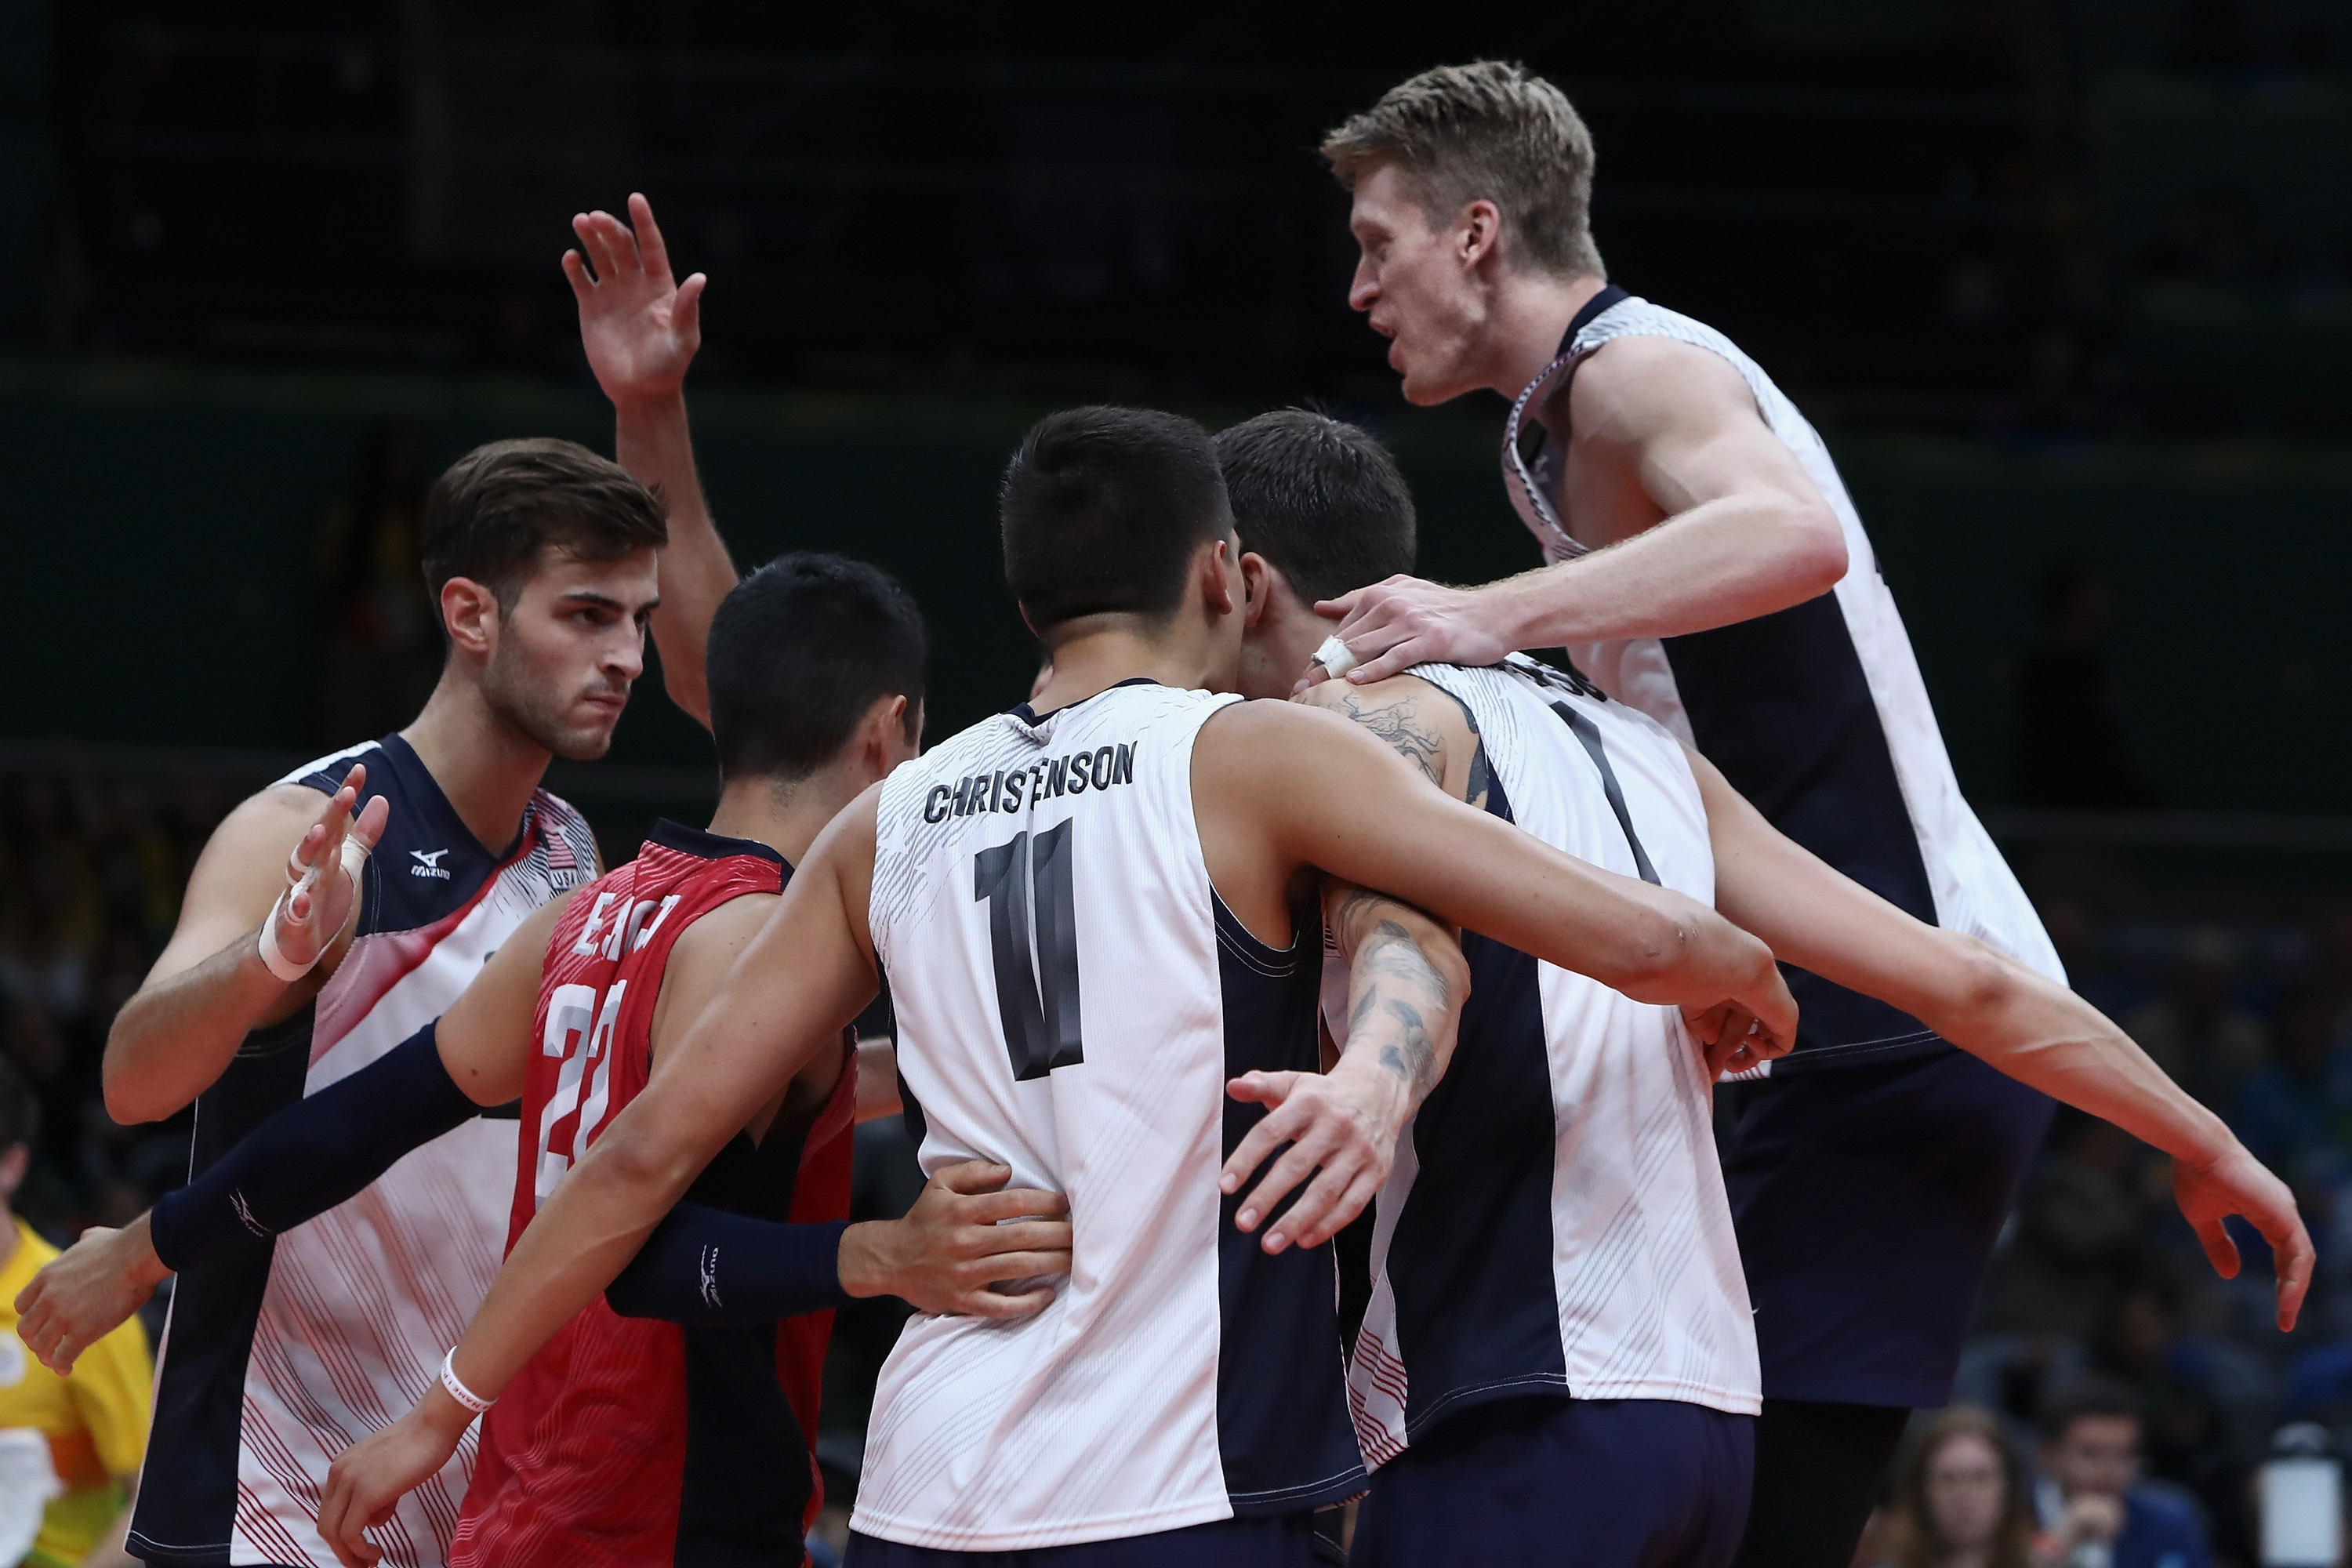 Matt Anderson (No. 1) and his United States teammates celebrate a point during Thursday night's upset of Brazil on its home turf.